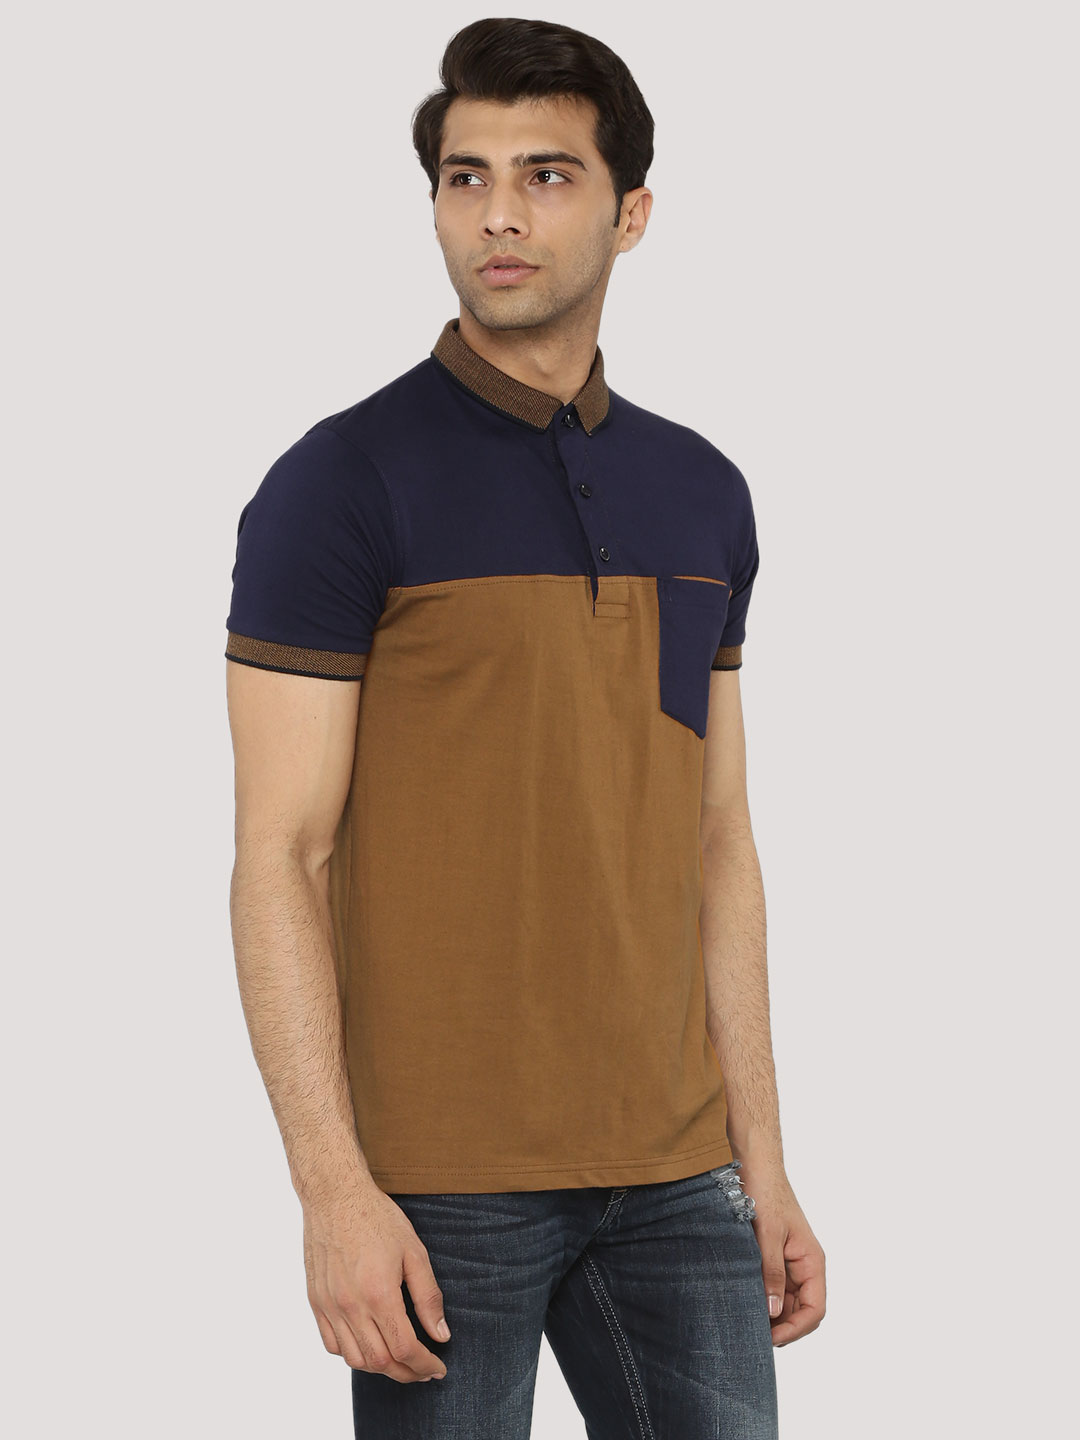 Blotch Navy/Brown Colour Block Polo With Pocket 1